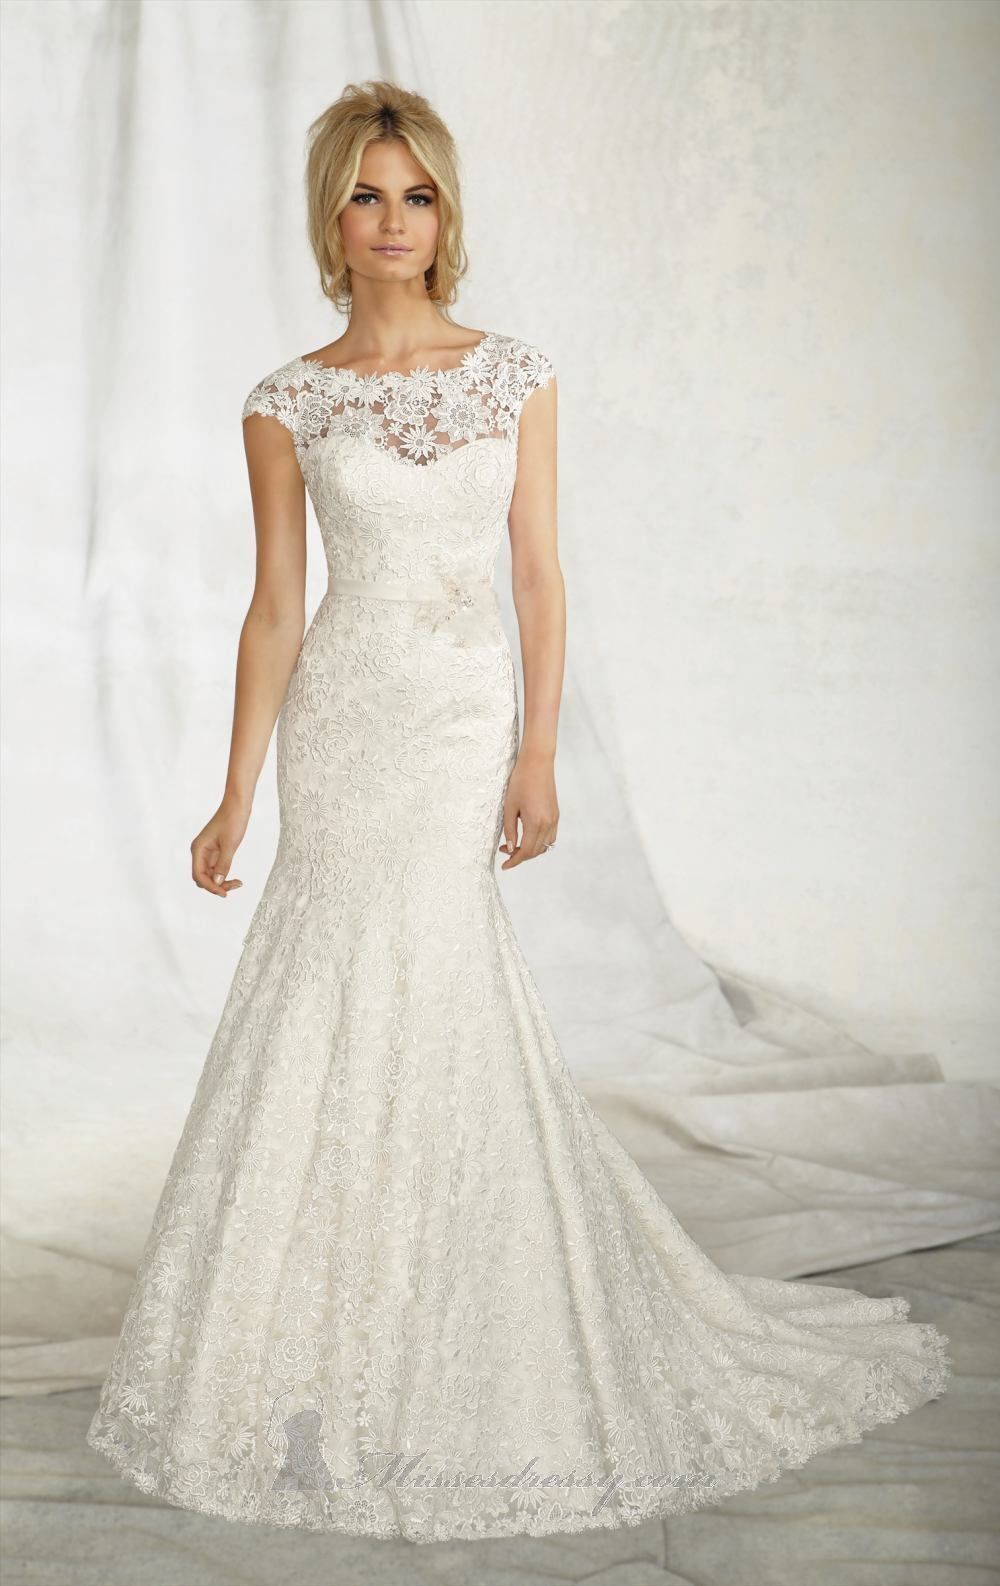 Top 10 lace wedding dresses ebay for Petite dresses for wedding